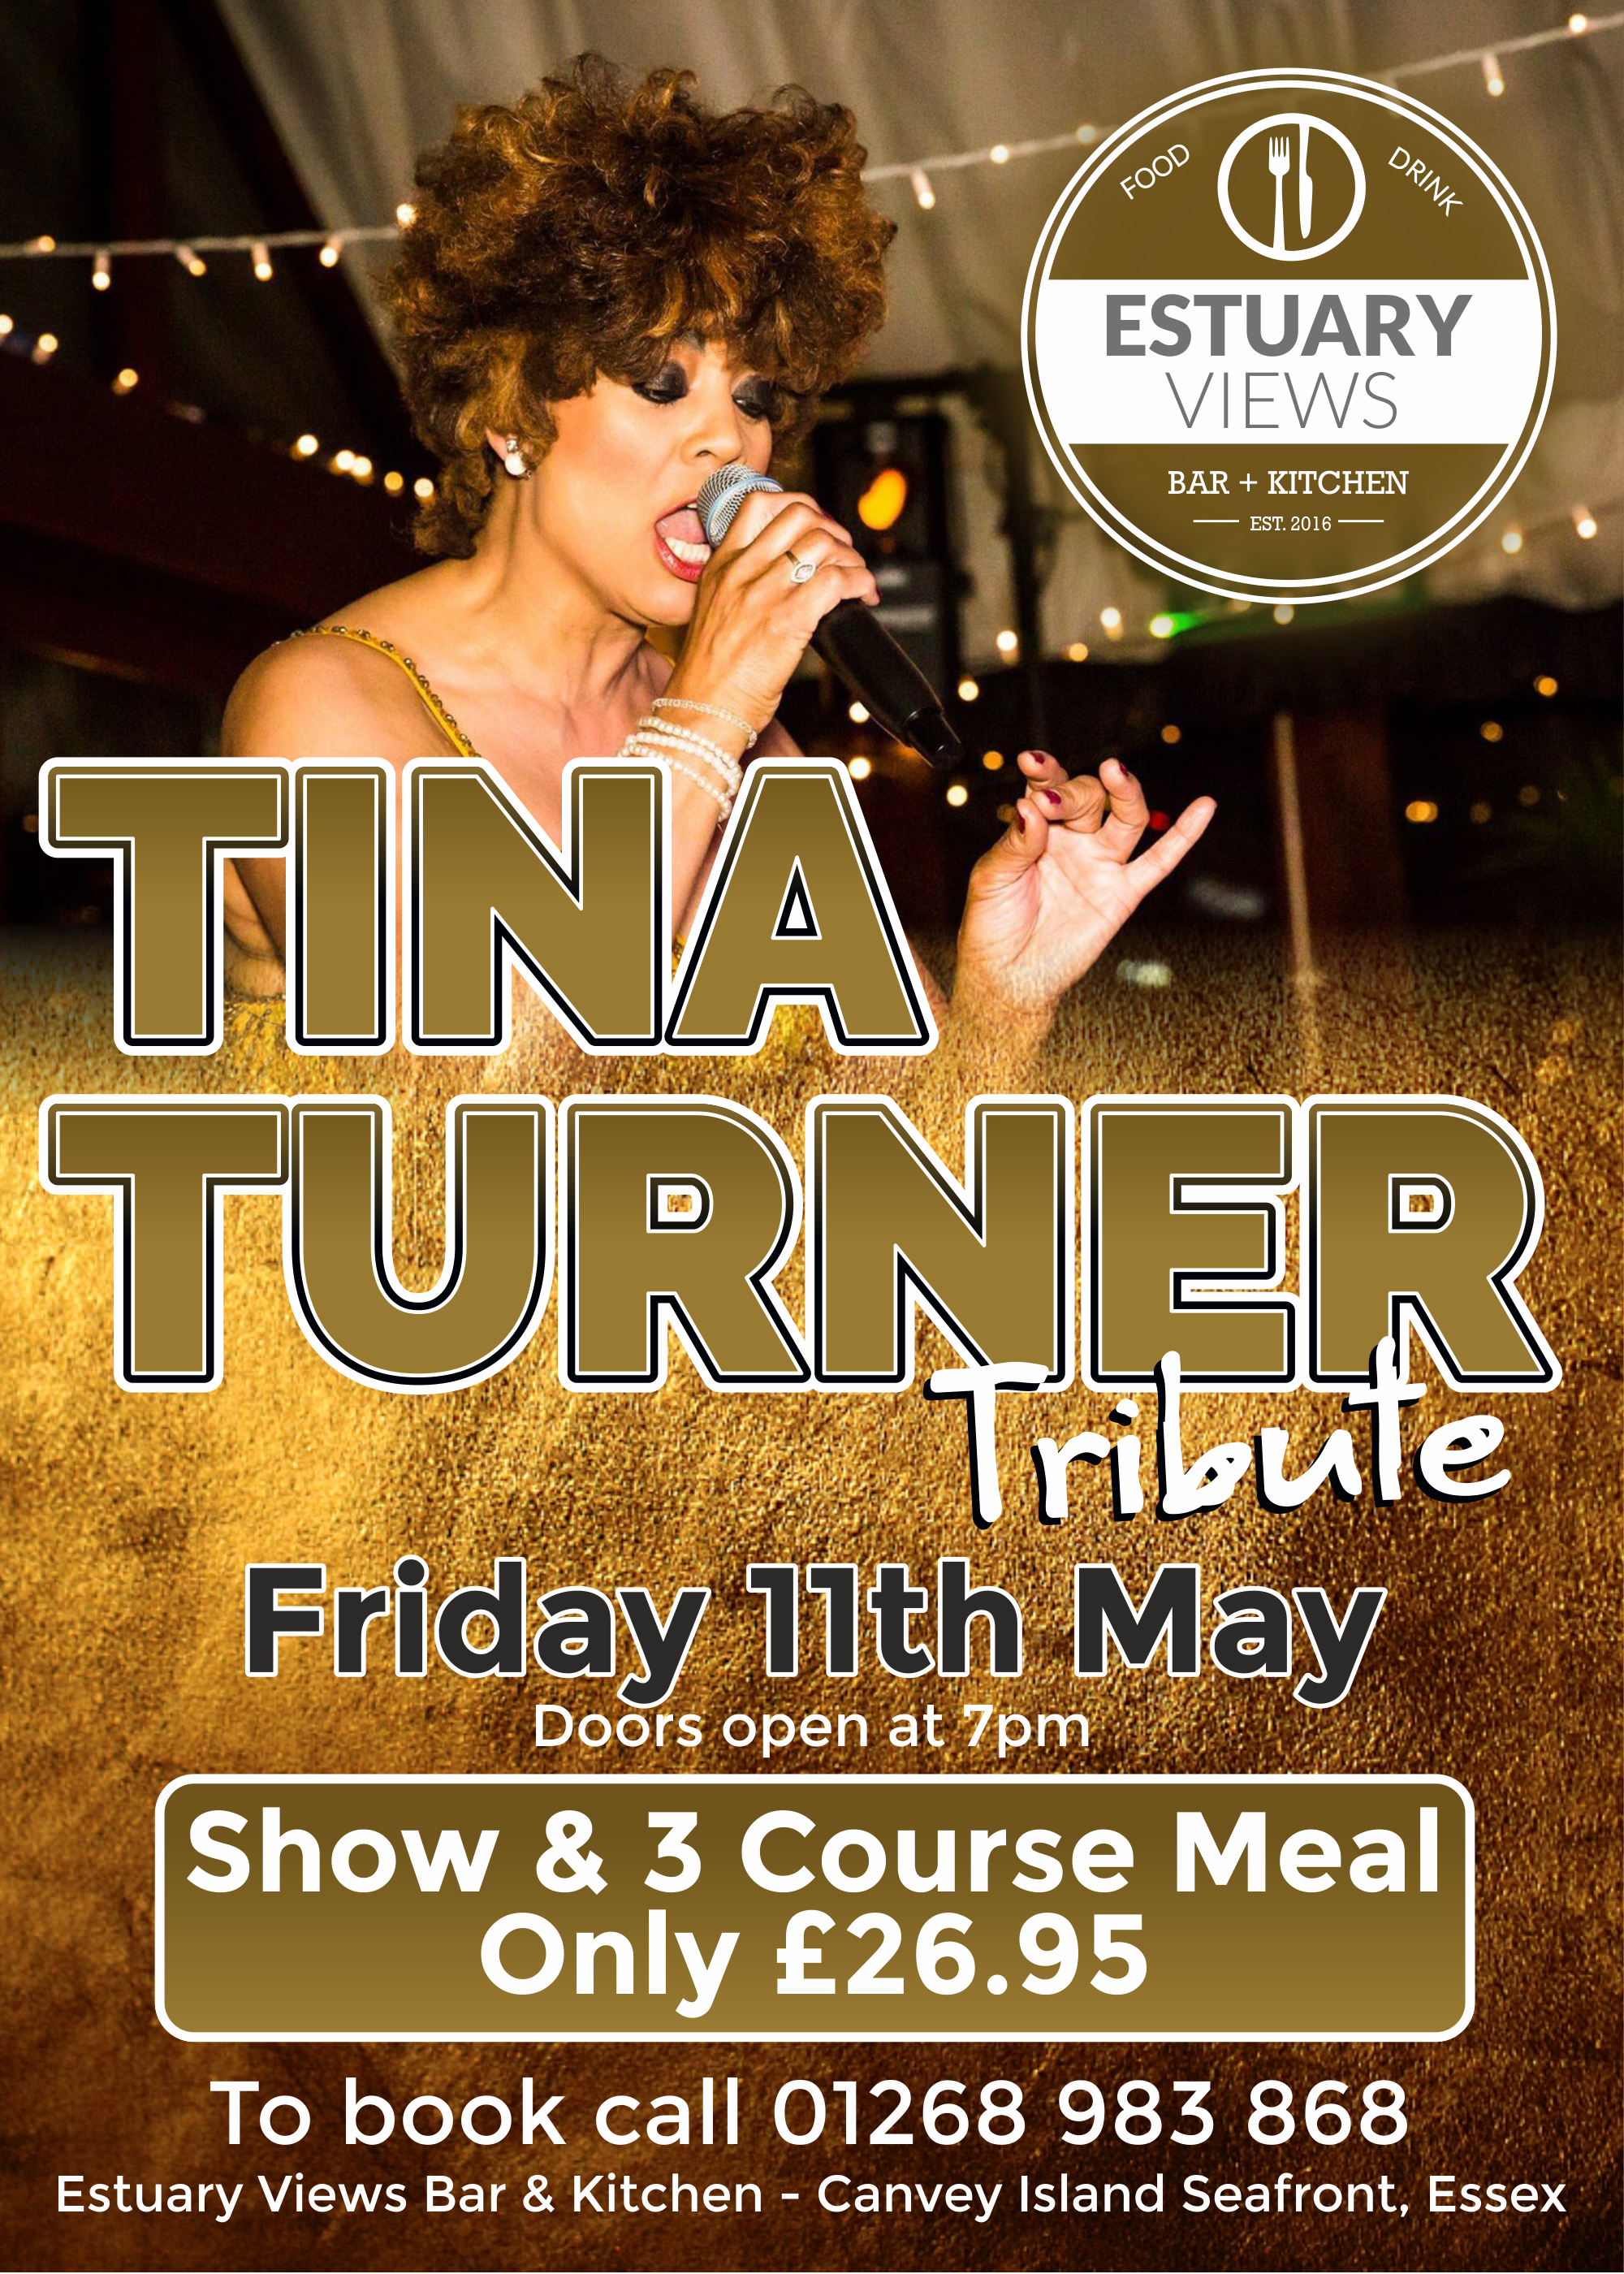 Whats Love Got To Do With It, Tina Turner Tribute Night